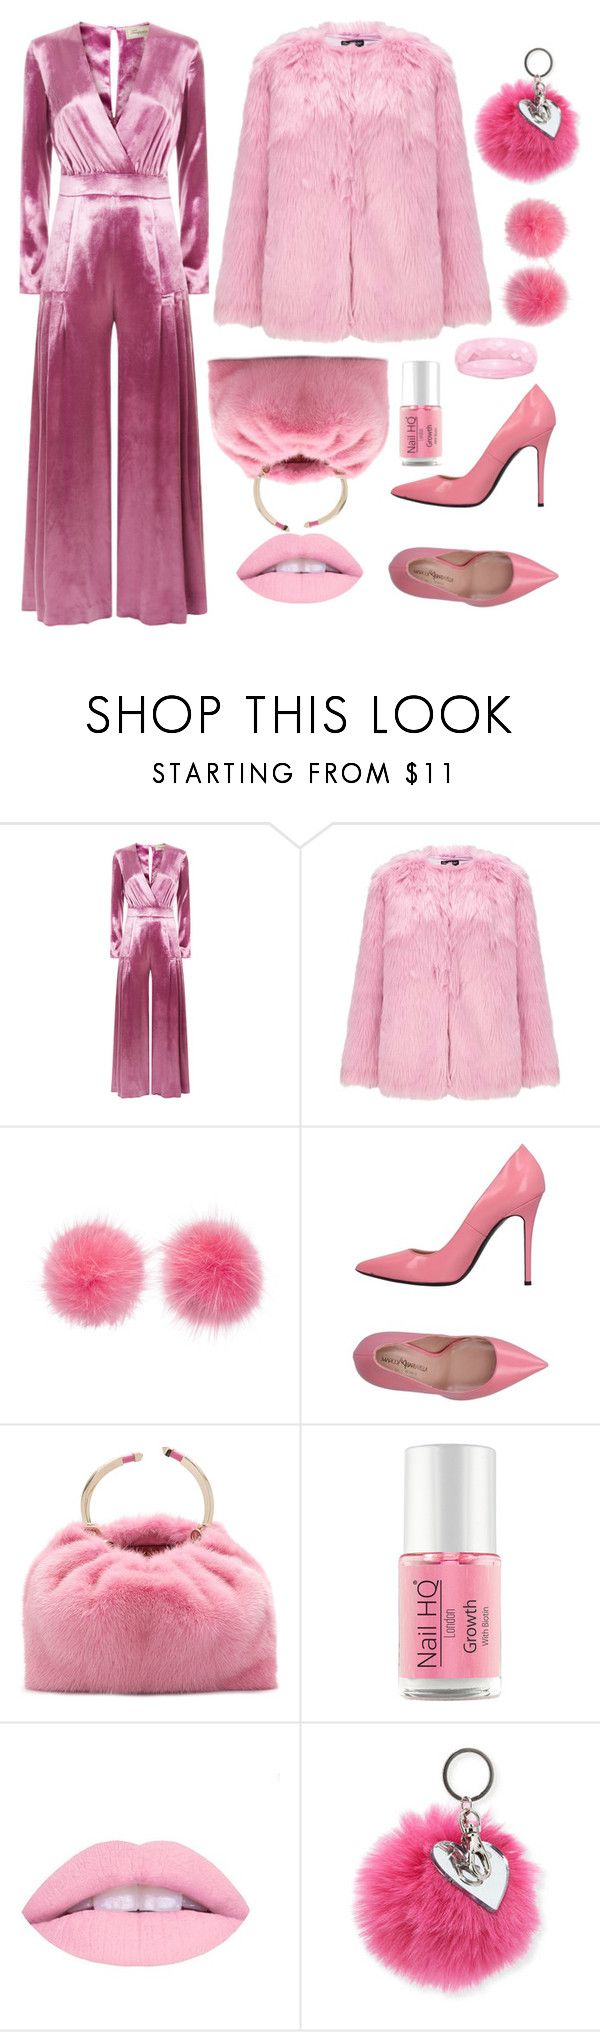 """Furry in pink"" by forgetrules ❤ liked on Polyvore featuring Temperley London, Miss Selfridge, Wild & Woolly, Marco Barbabella, Valentino and Bari Lynn"